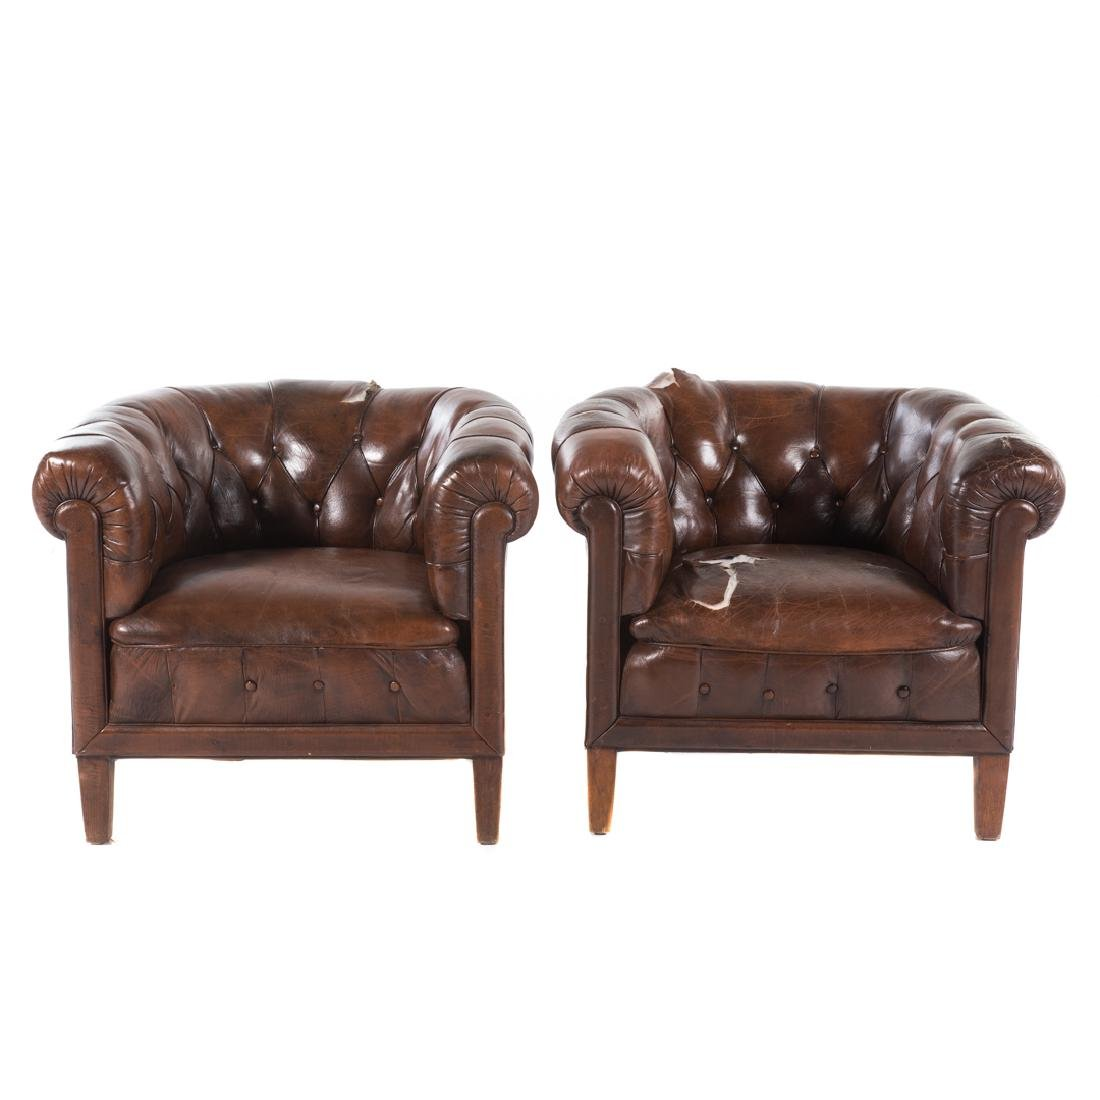 Pair French tufted leather upholstered tub chairs